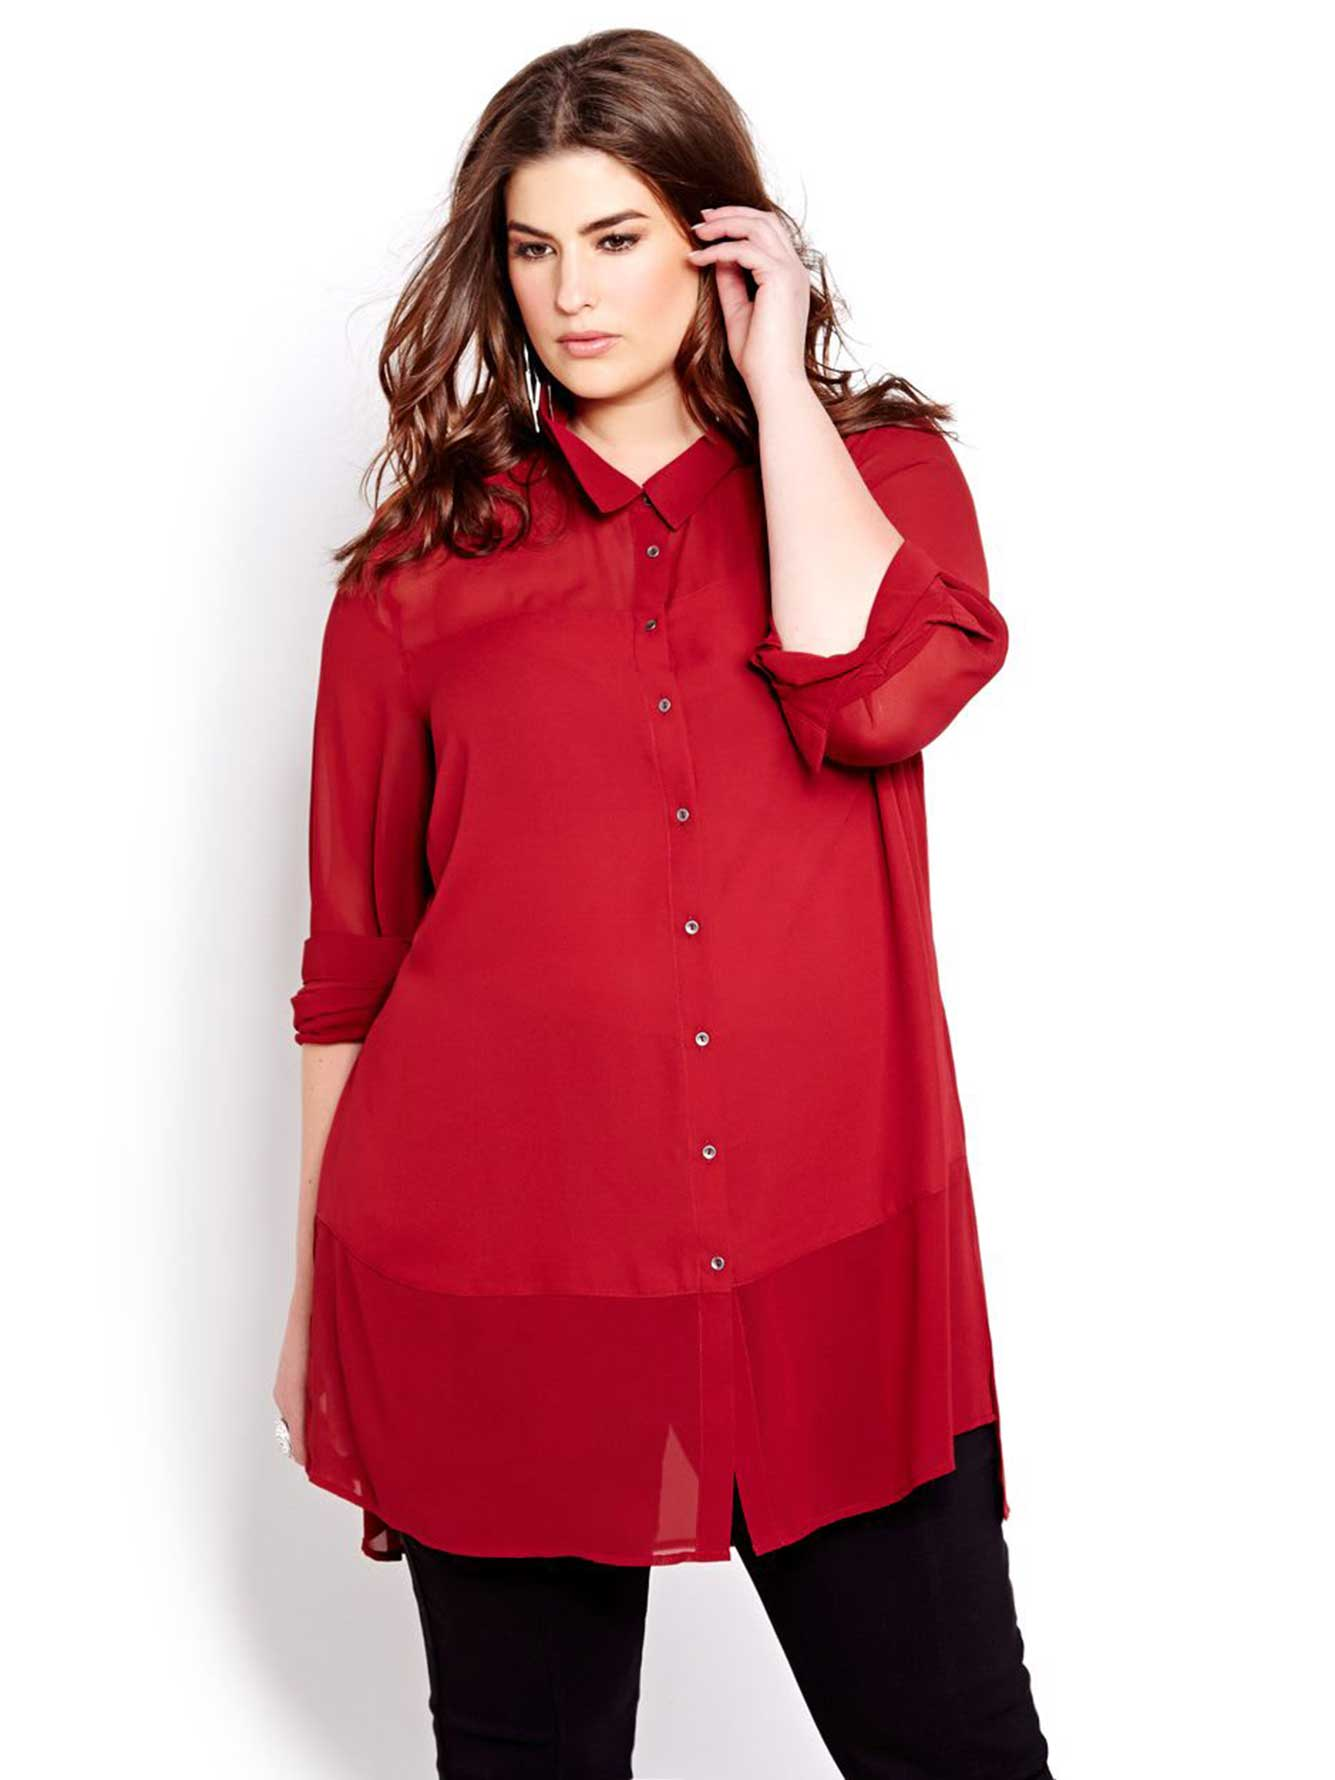 Overstock uses cookies to ensure you get the best experience on our site. If you continue on our site, you consent to the use of such cookies. Learn more. OK Tunic Tops. Clothing Simply Ravishing Women's Scoop Long Sleeve Pleated Flare Blouse Top Tunic Shirt (Size: S-5X).